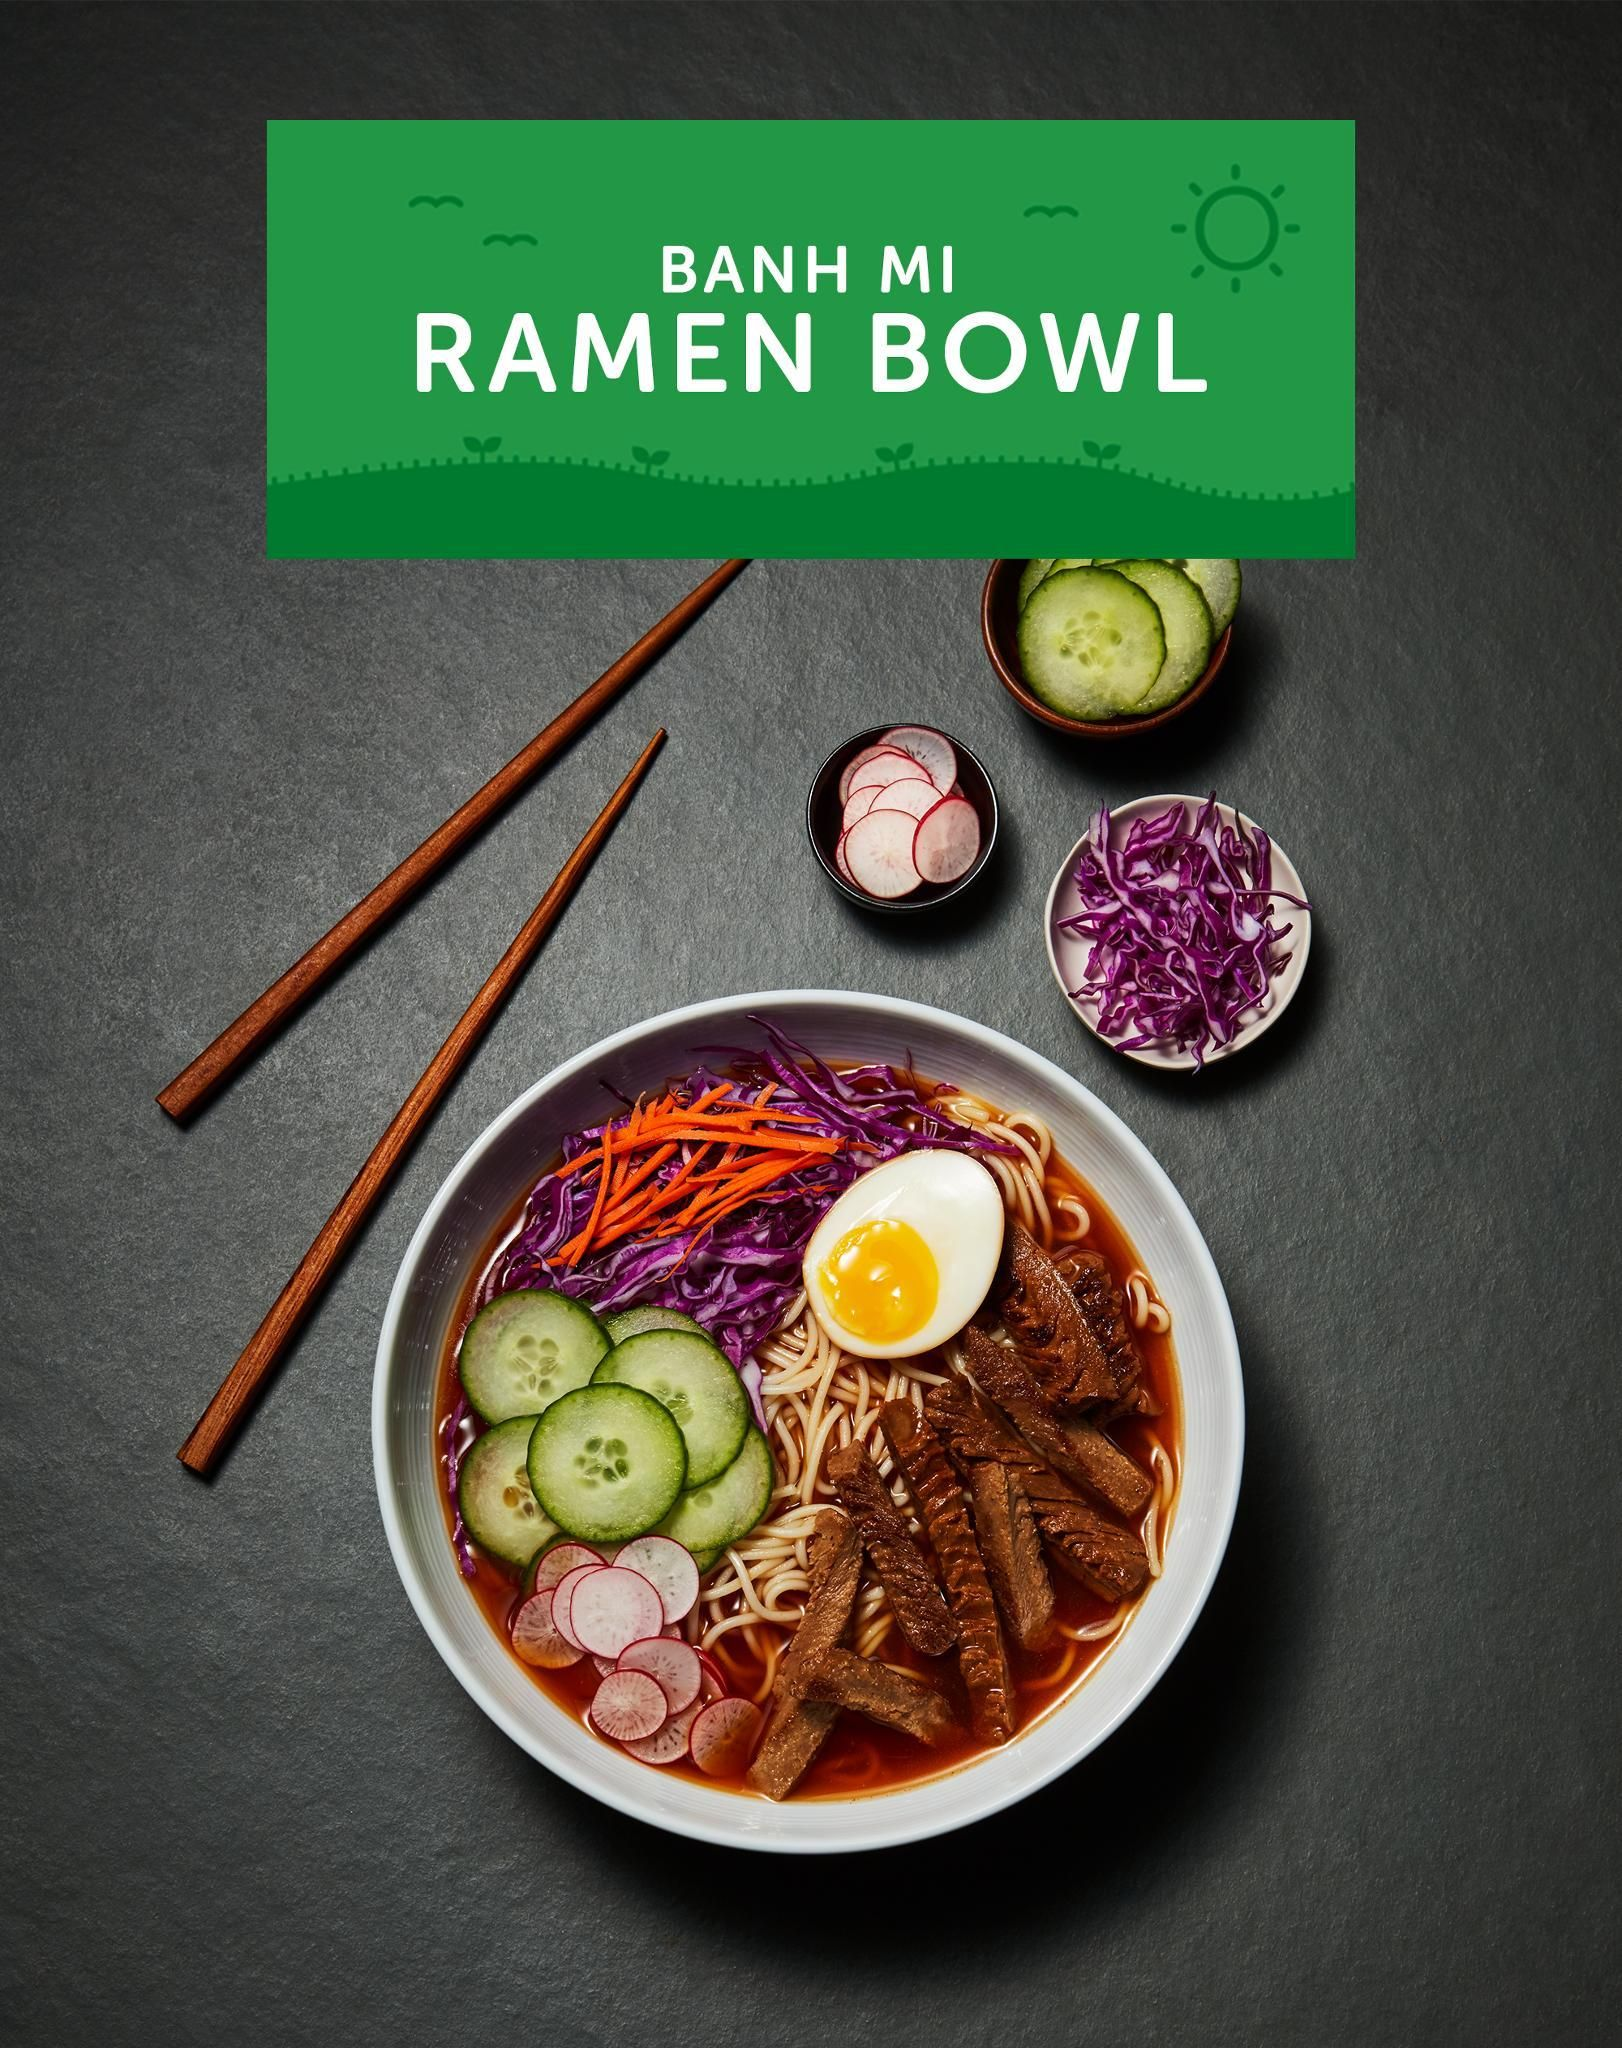 New year, new soup. This Bahn Mi Ramen Bowl is an easy vegetarian dinner that takes less than 30 minutes to make. If you're craving a nice warm meal, you have to try this.